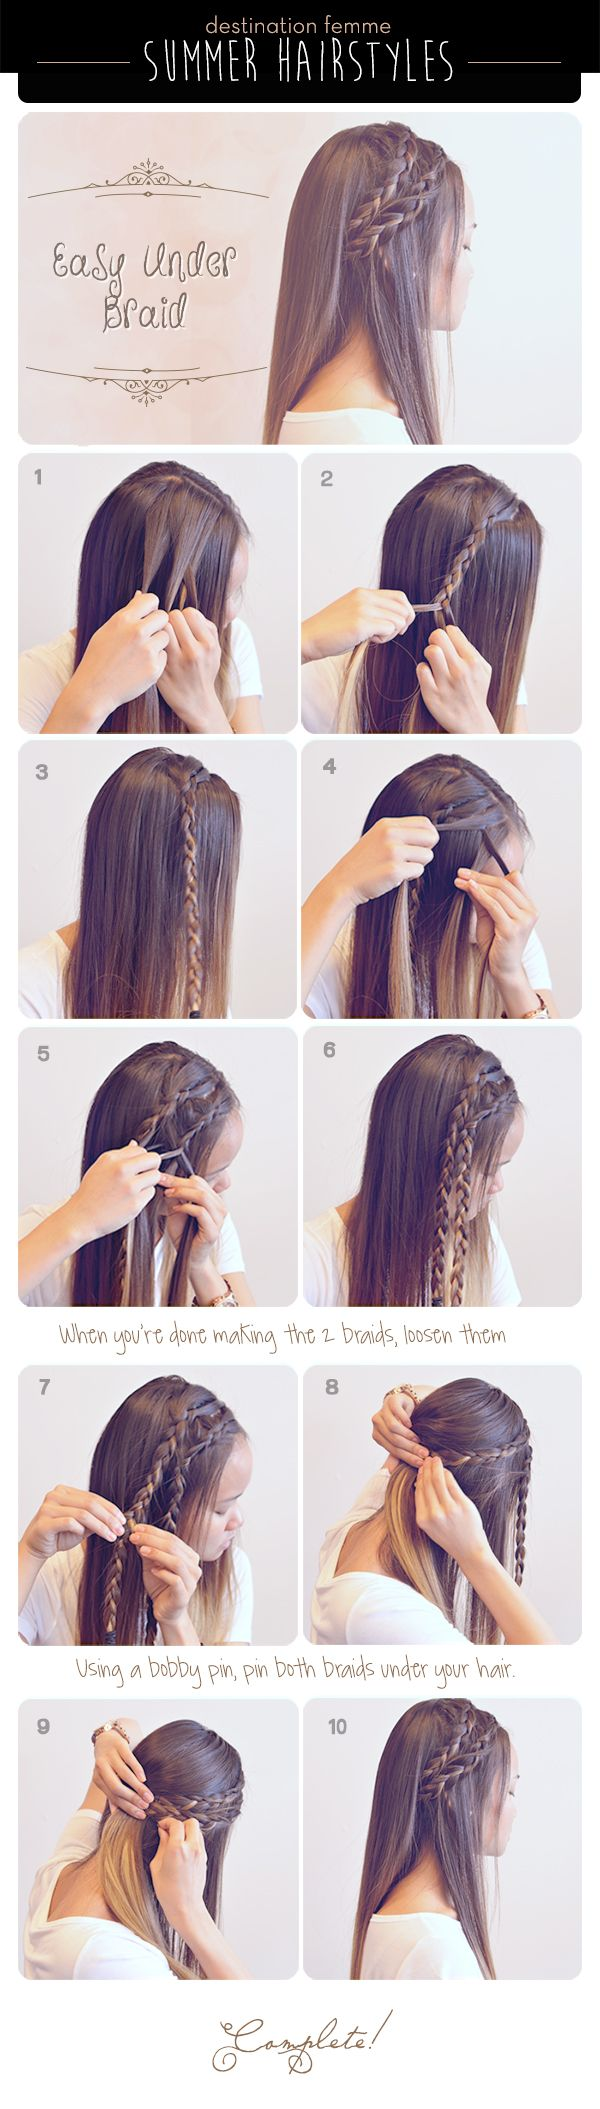 cute u easy braided hairdos for summer destination femme